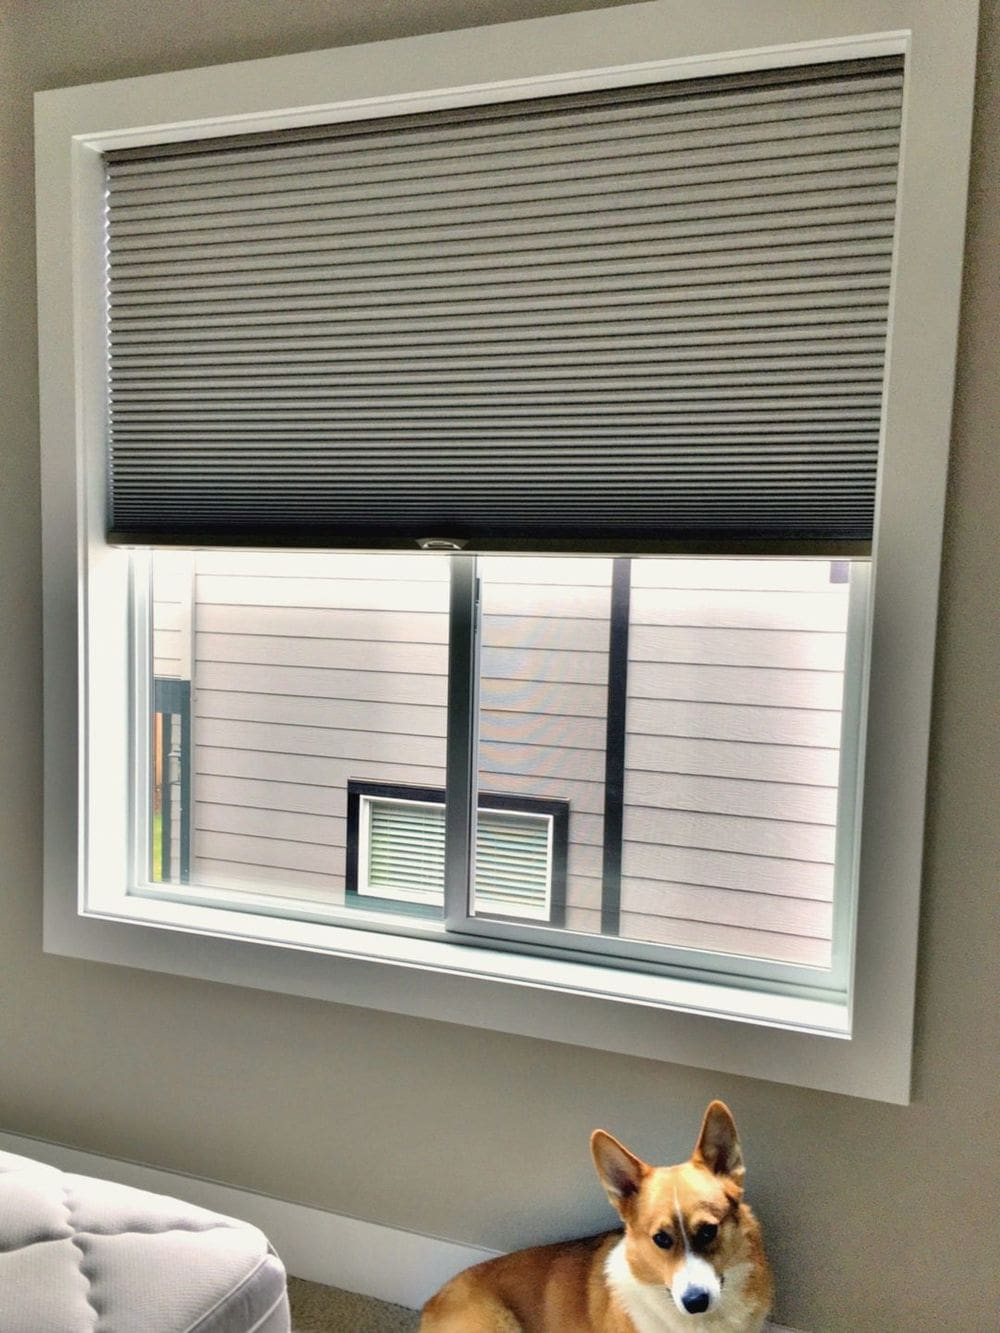 A focused look at this sliding glass window featuring a window shade.